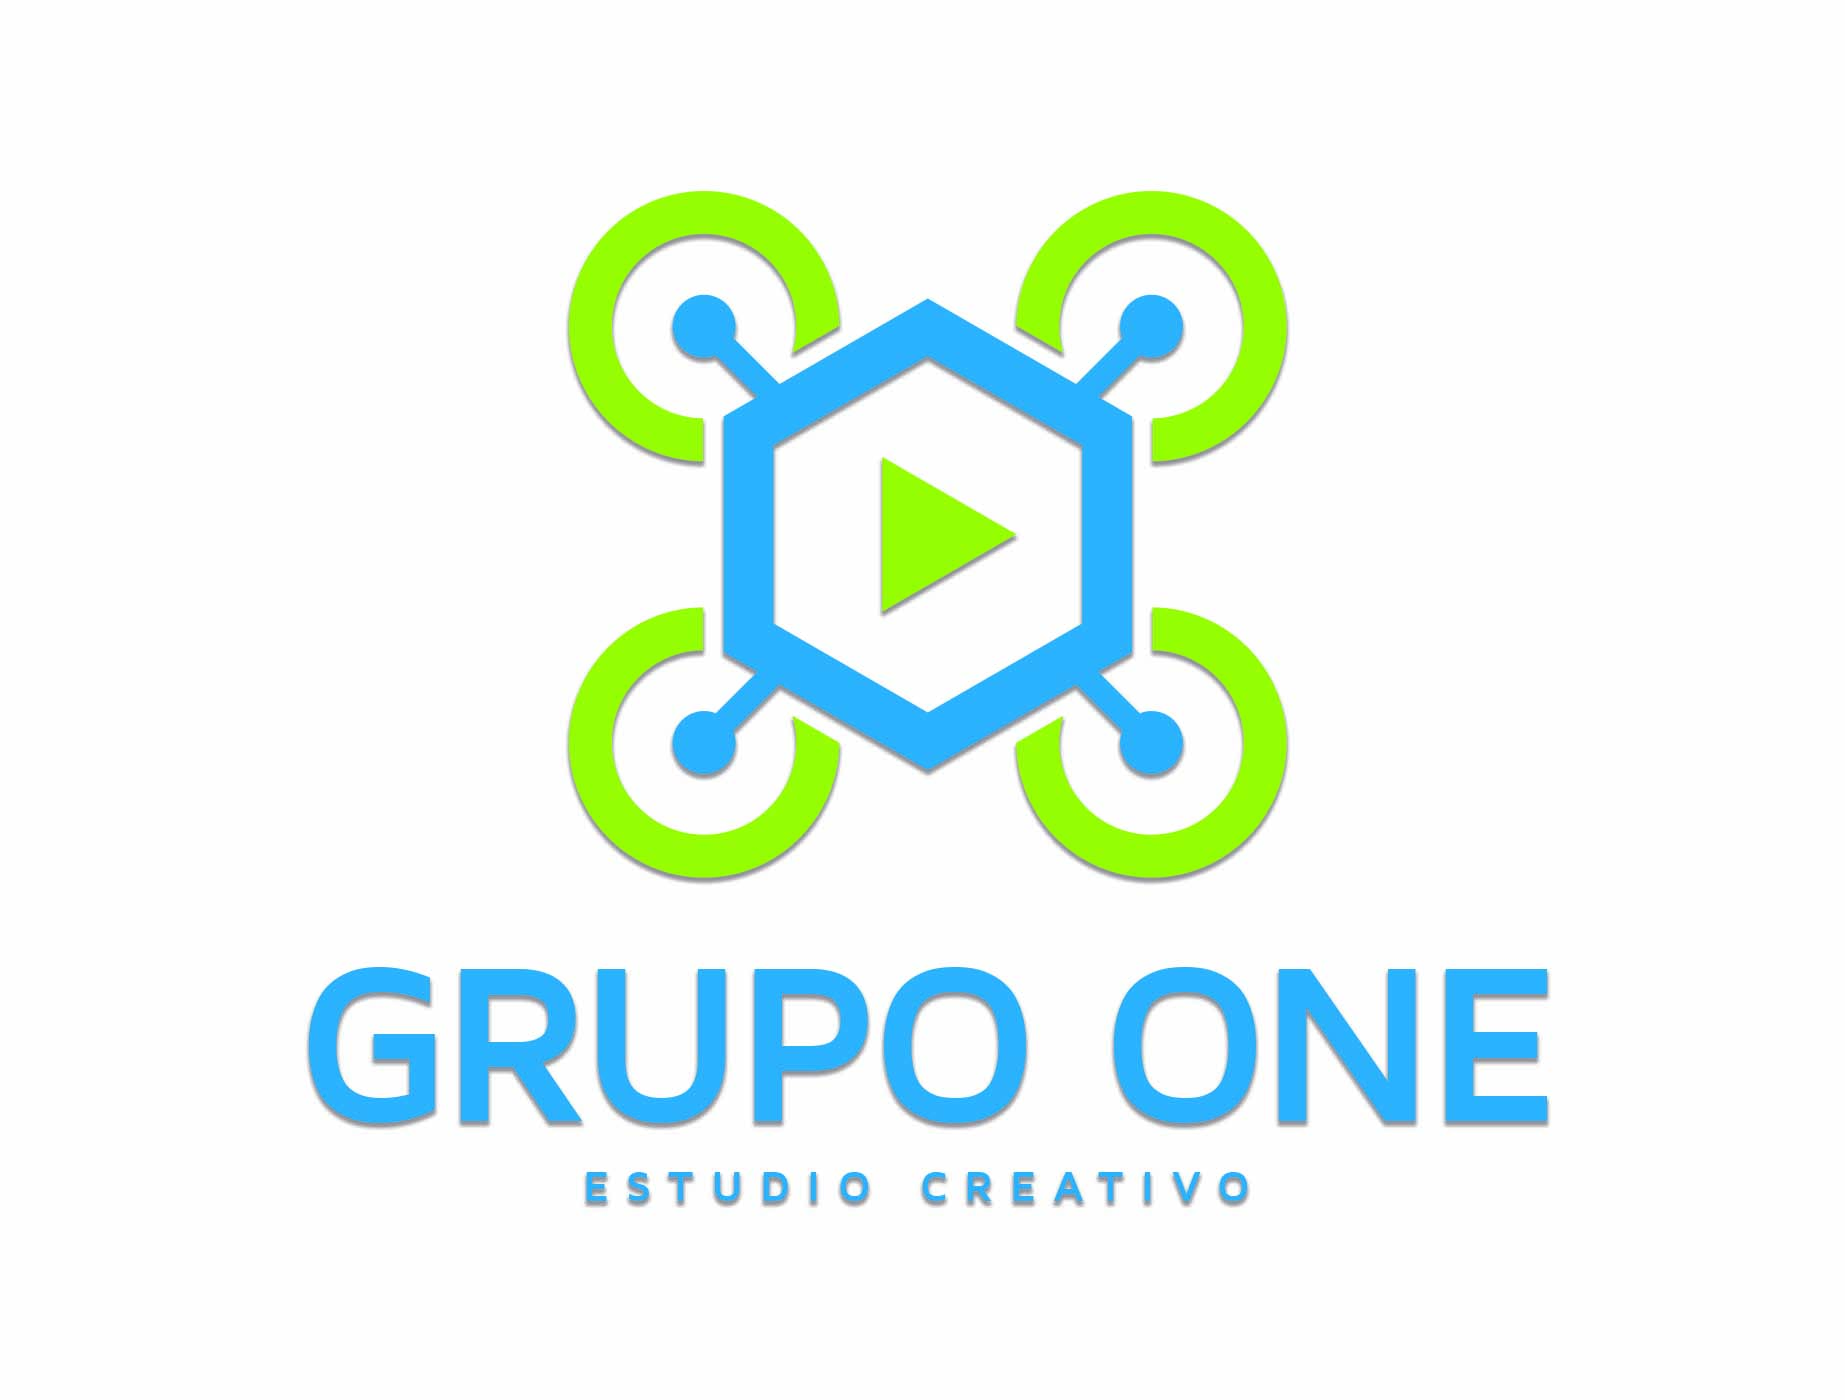 Grupo ONE Estudio Creativo